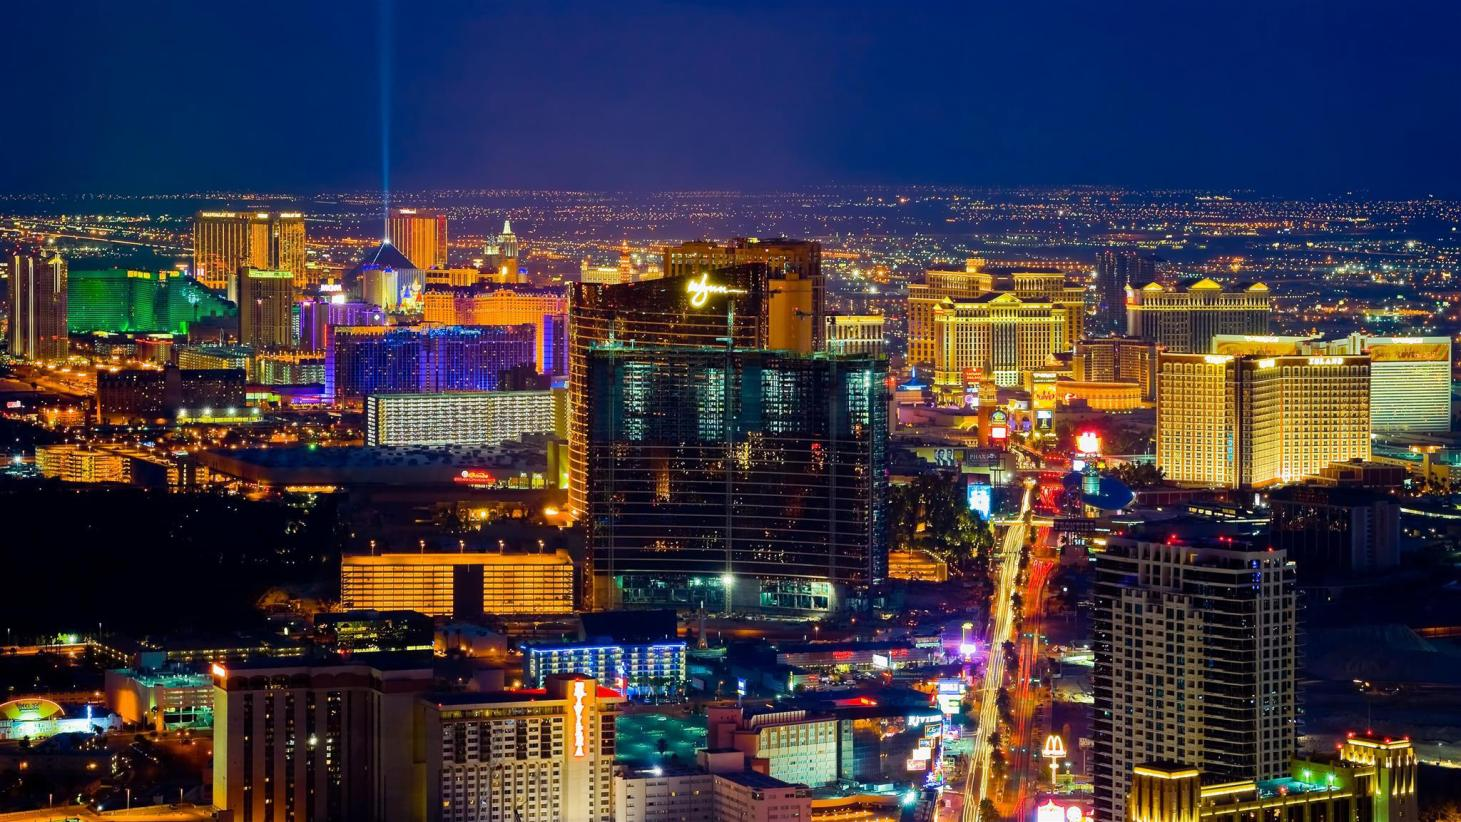 30 Best Las Vegas Nv Hotels Free Cancellation 2020 Price Lists Reviews Of The Best Hotels In Las Vegas Nv United States